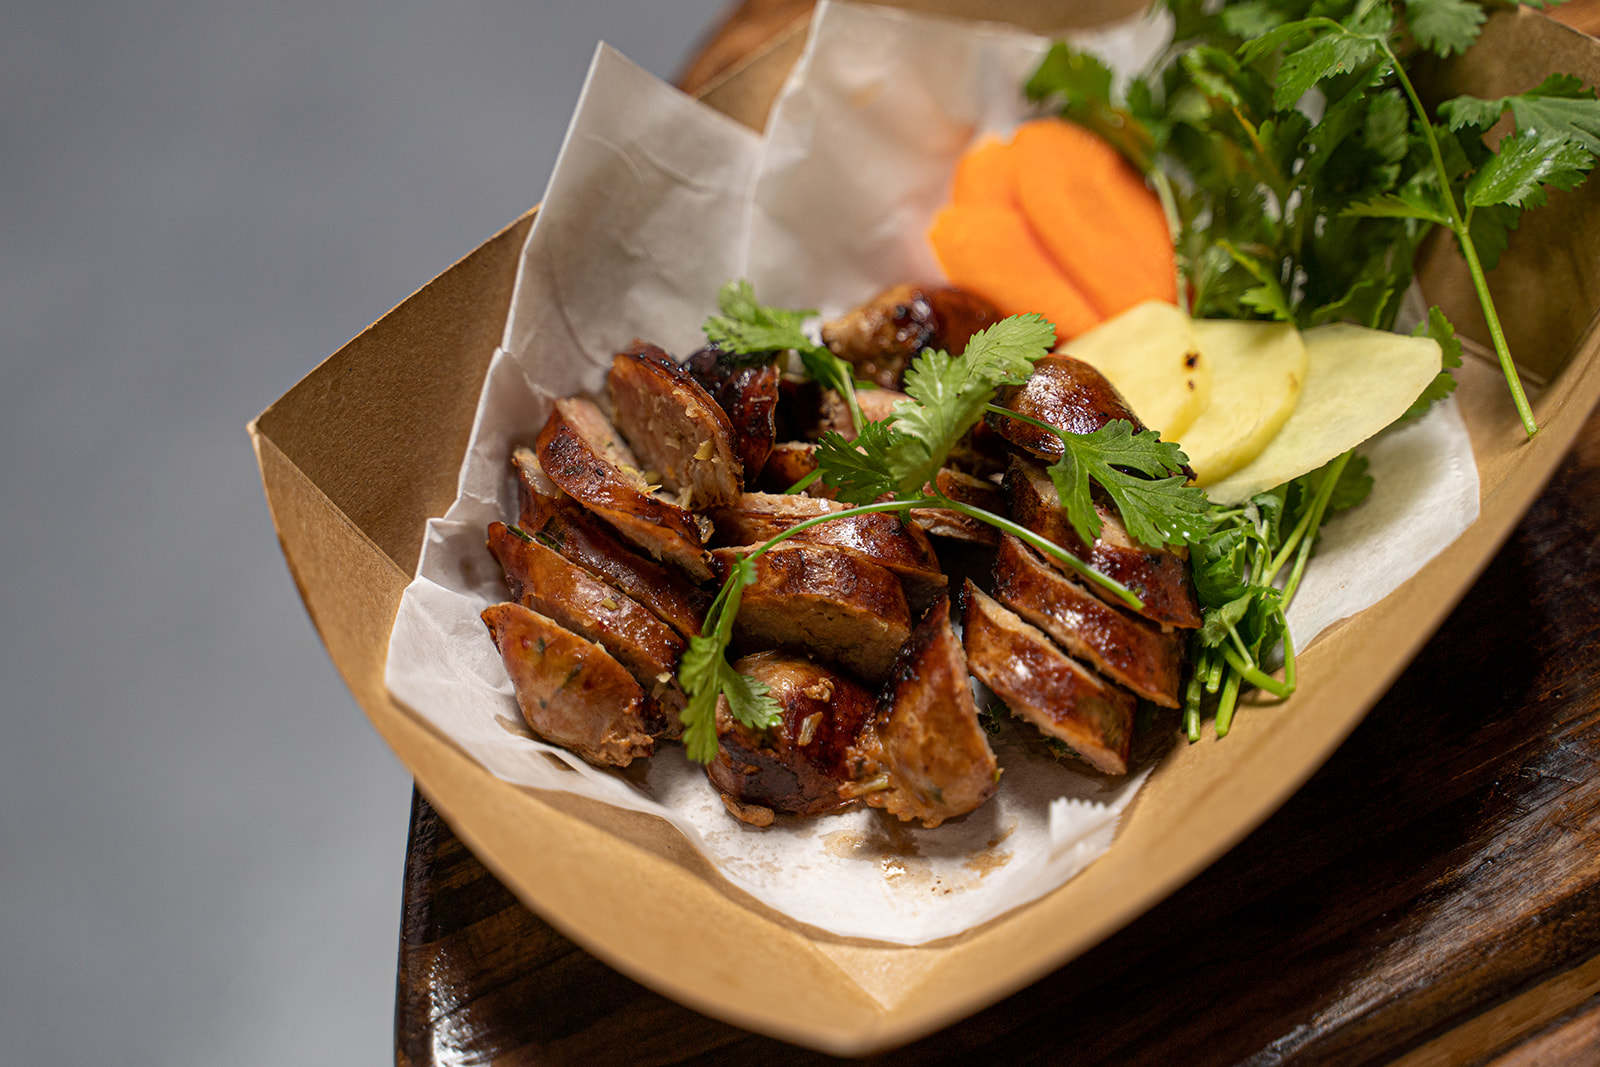 Slices of Thai sausage garnished with cilantro, ginger, carrots, and mint.